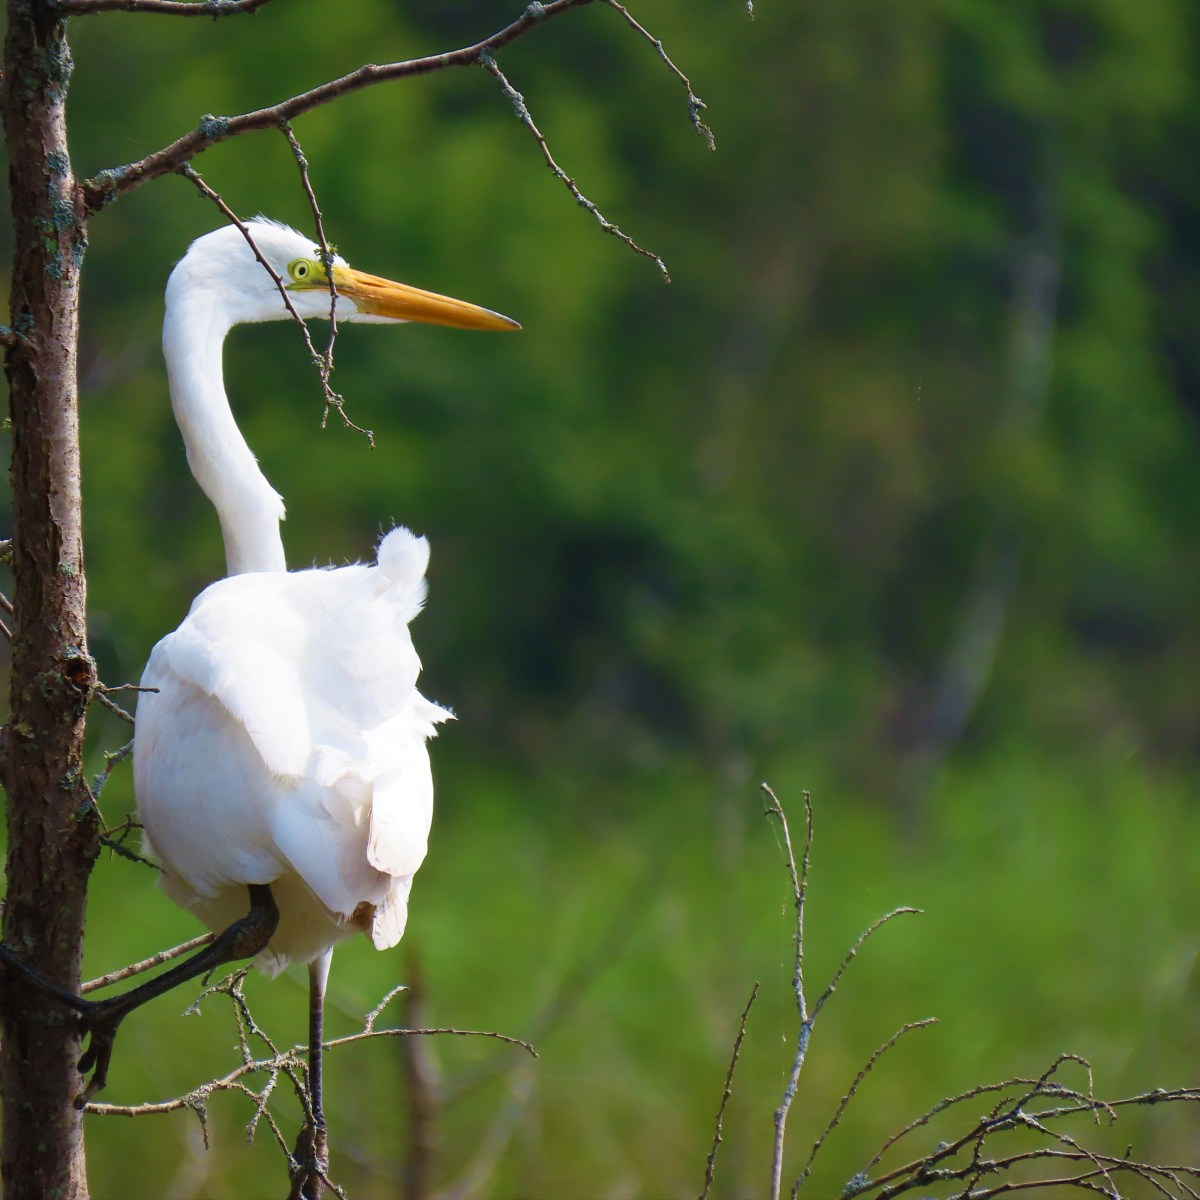 A Great Egret perched on a thin, leafless tree in a wetland